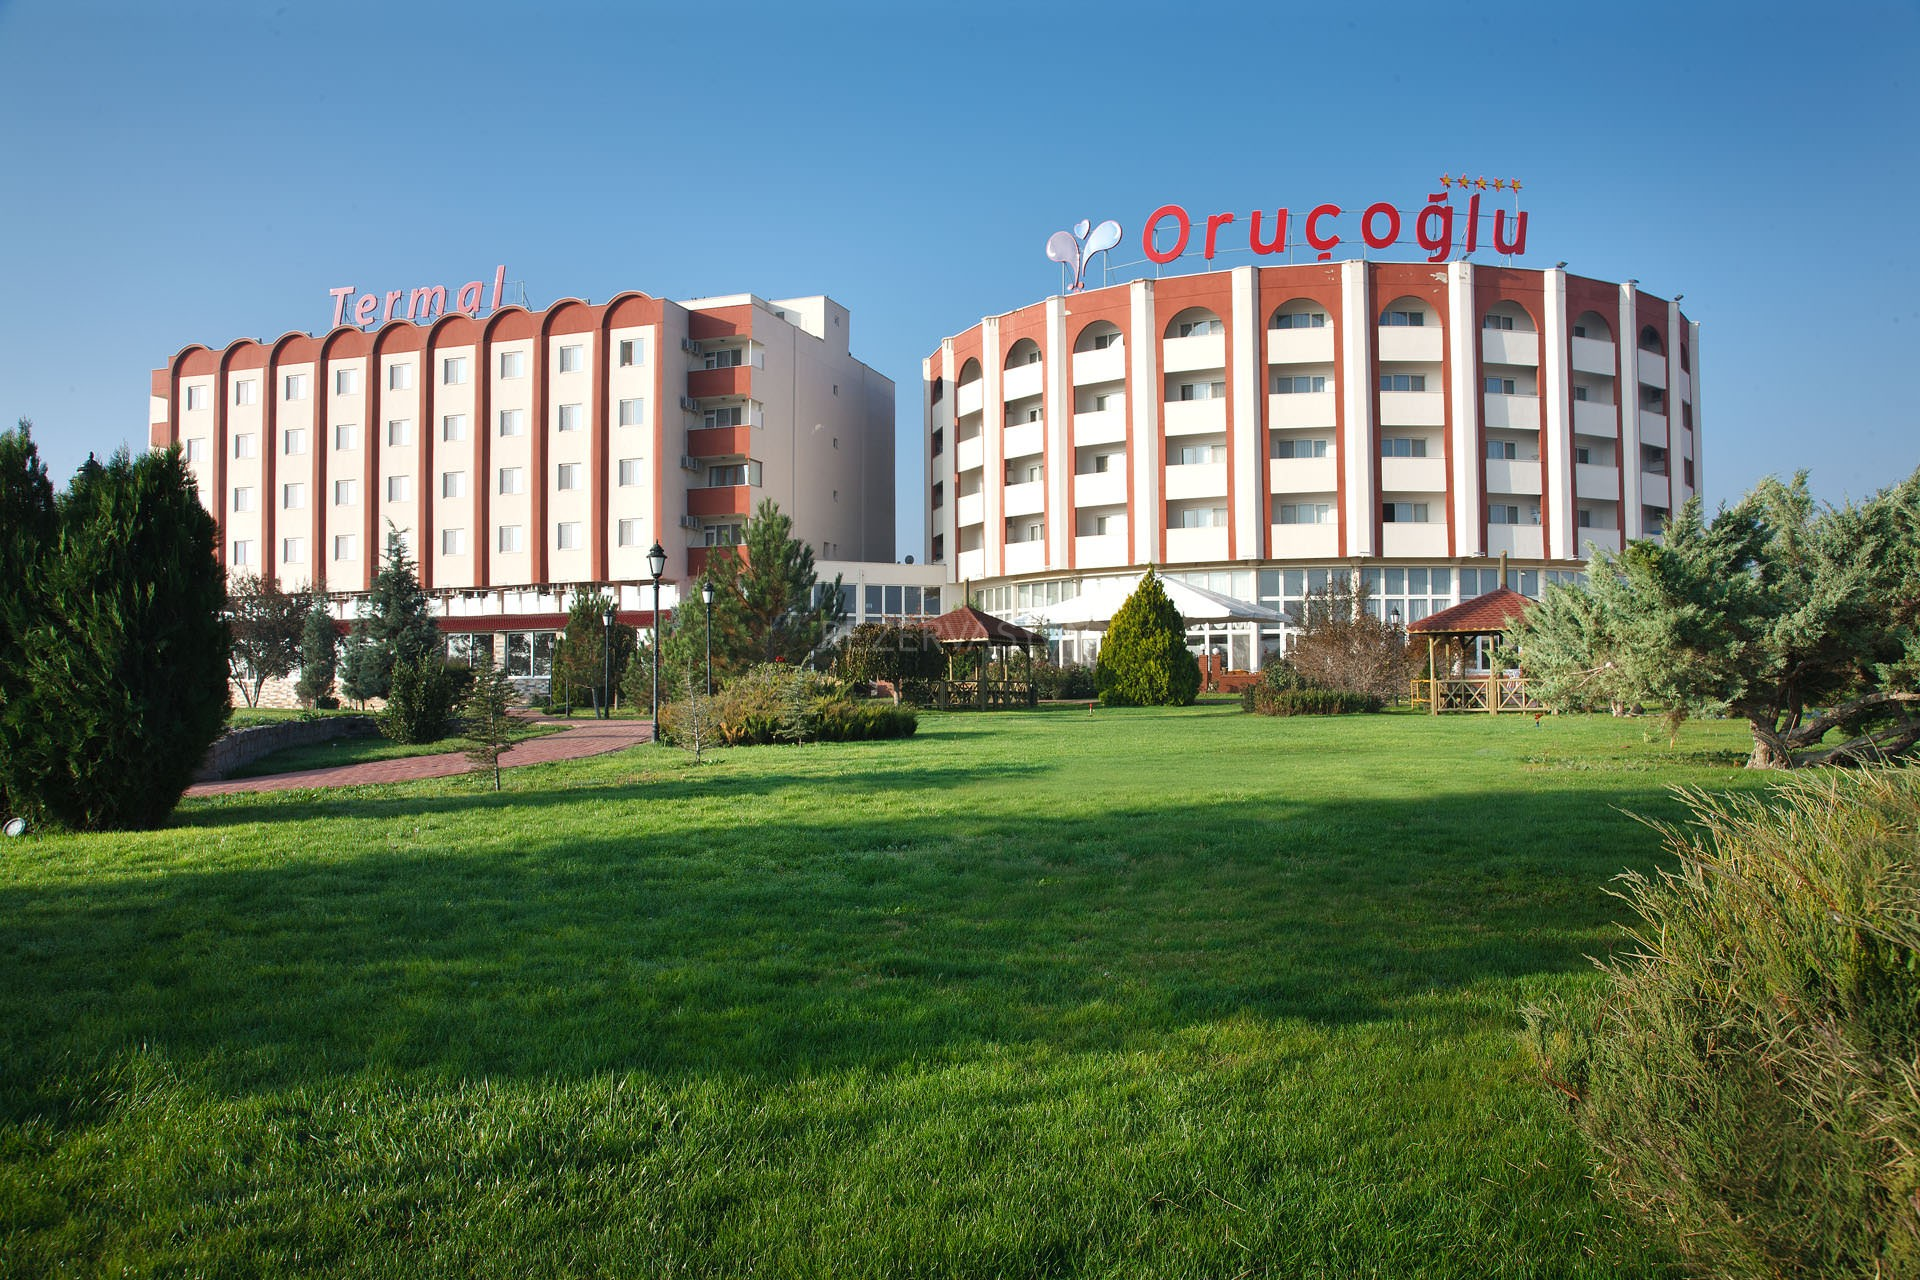 Oruçoğlu Thermal Resort